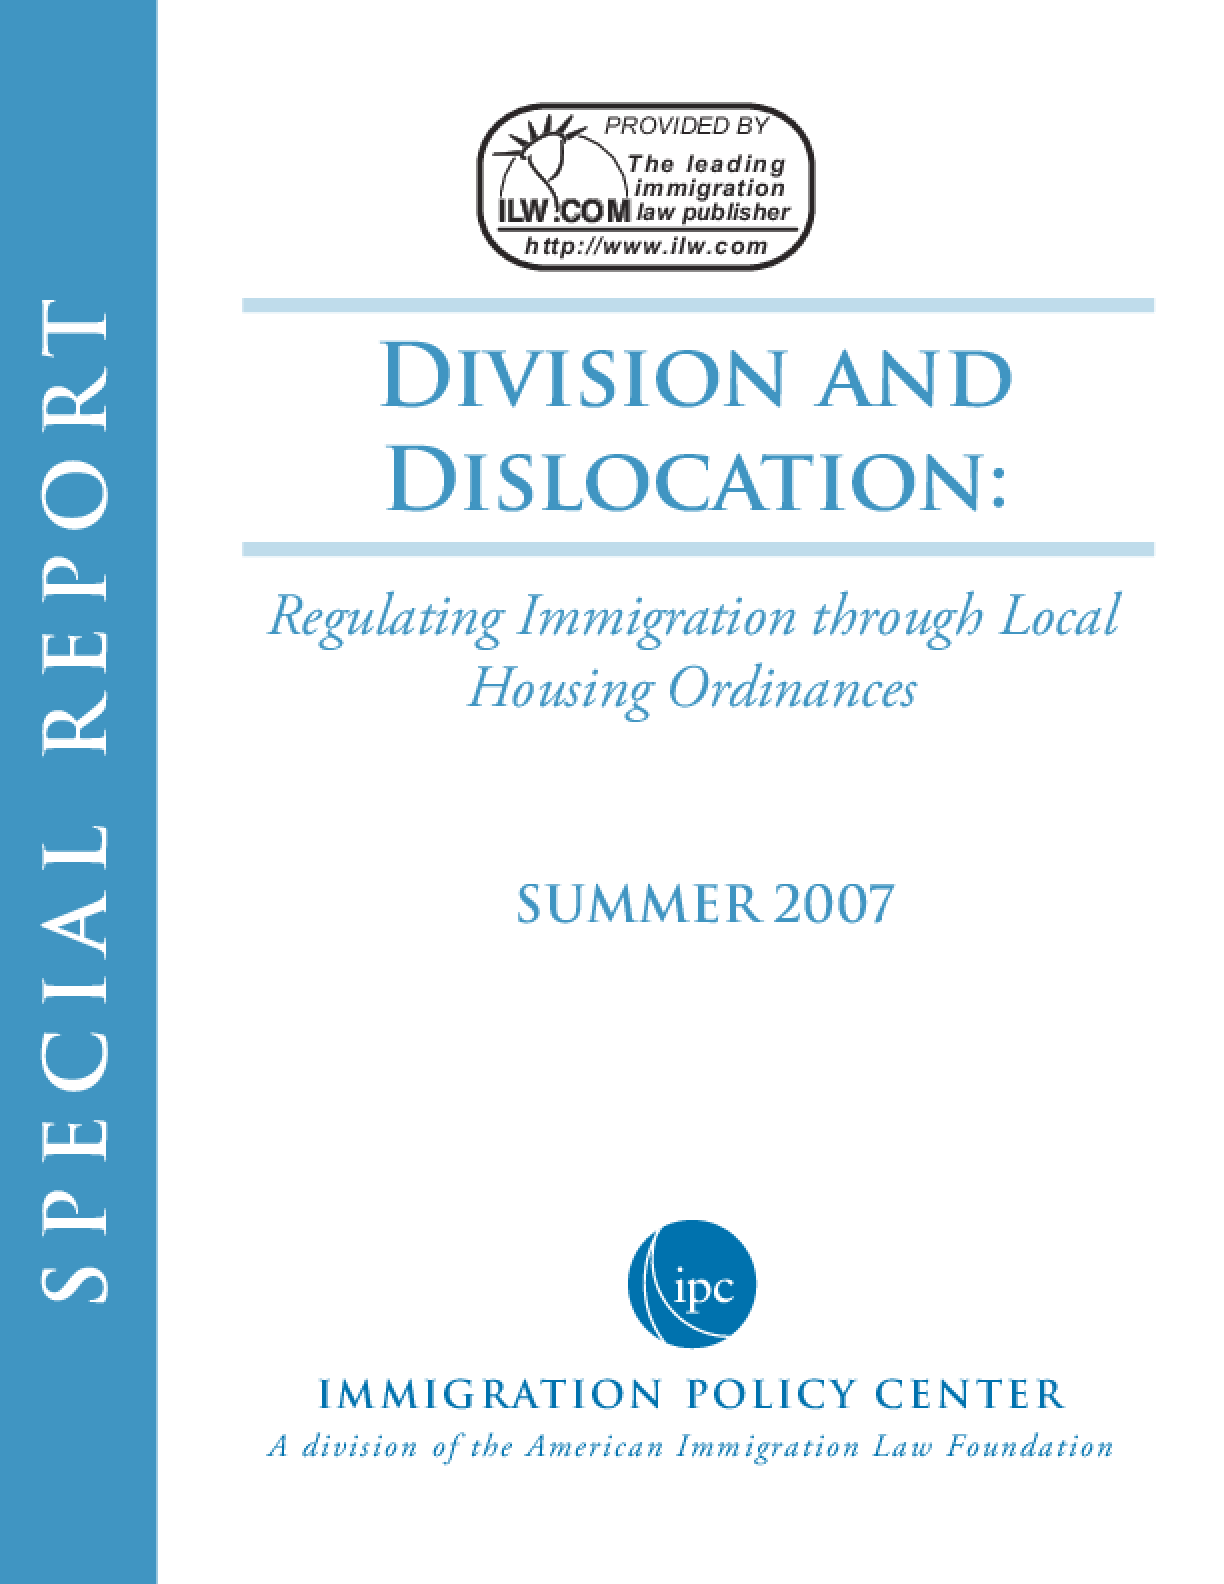 Division and Dislocation: Regulating Immigration through Local Housing Ordinances